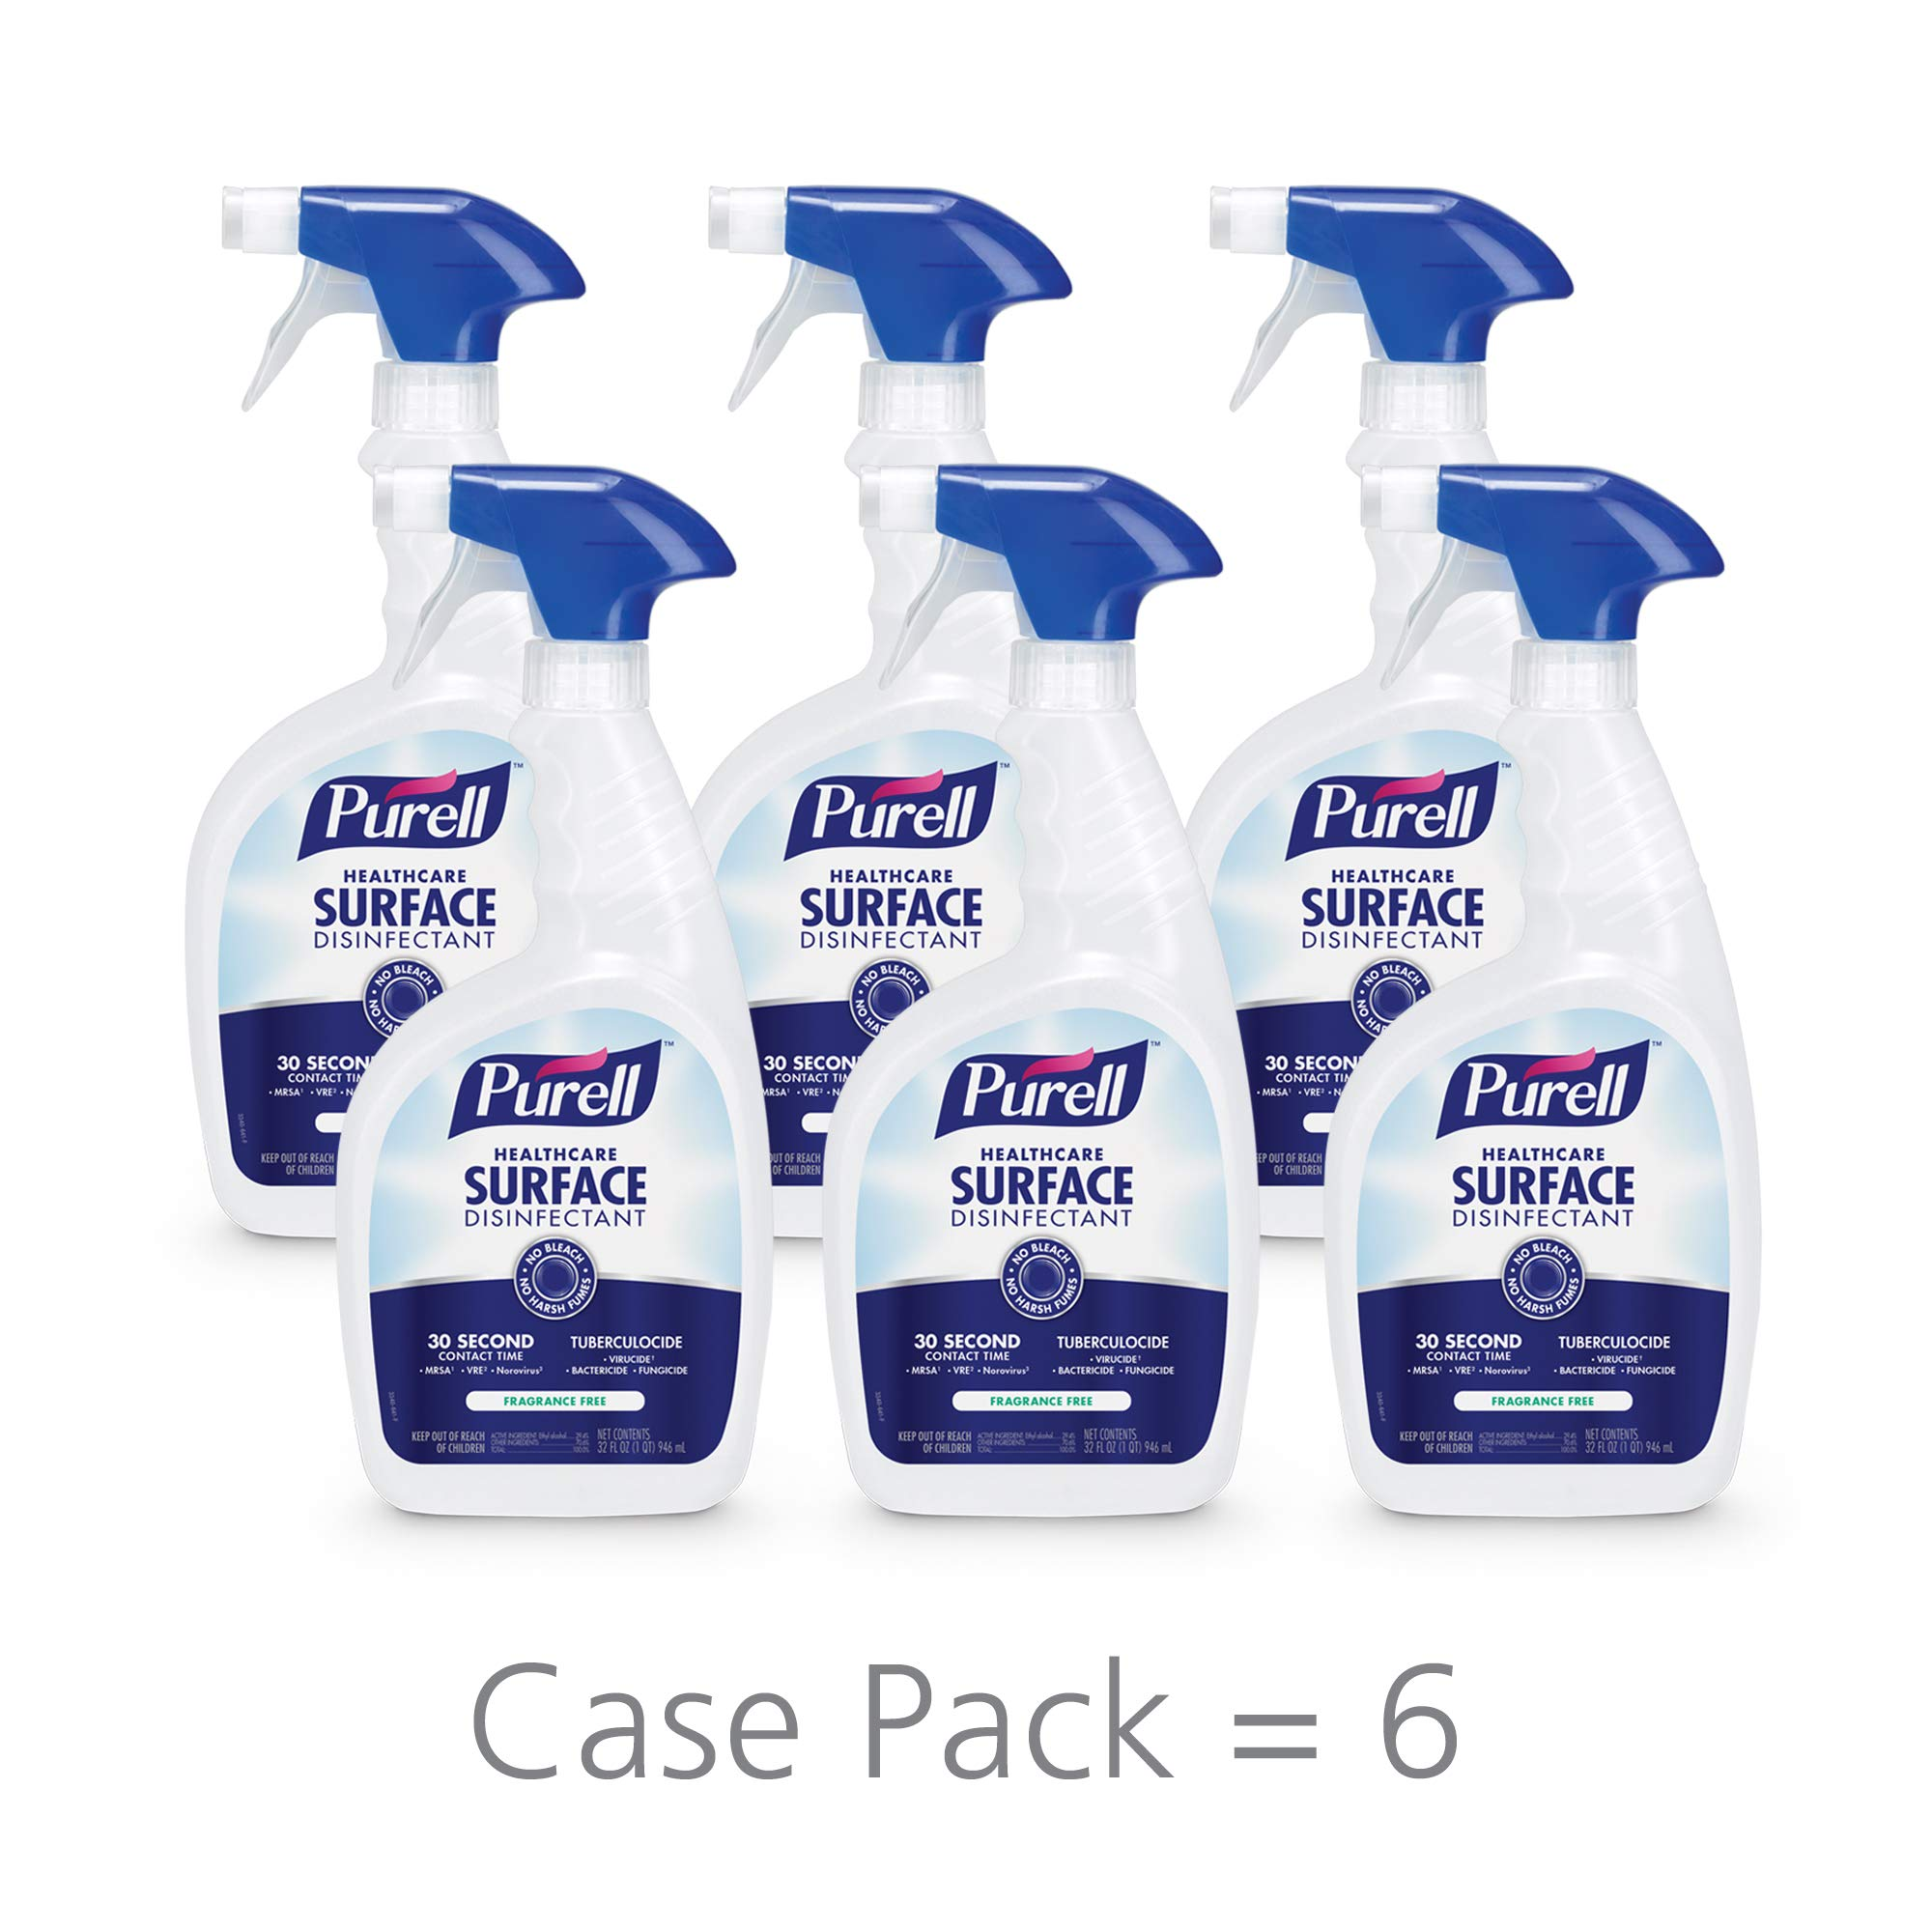 PURELL Healthcare Surface Disinfectant Spray, Fragrance Free, 32 fl oz Disinfectant Spray Bottle with Trigger Sprayer (Case of 6) - 3340-06